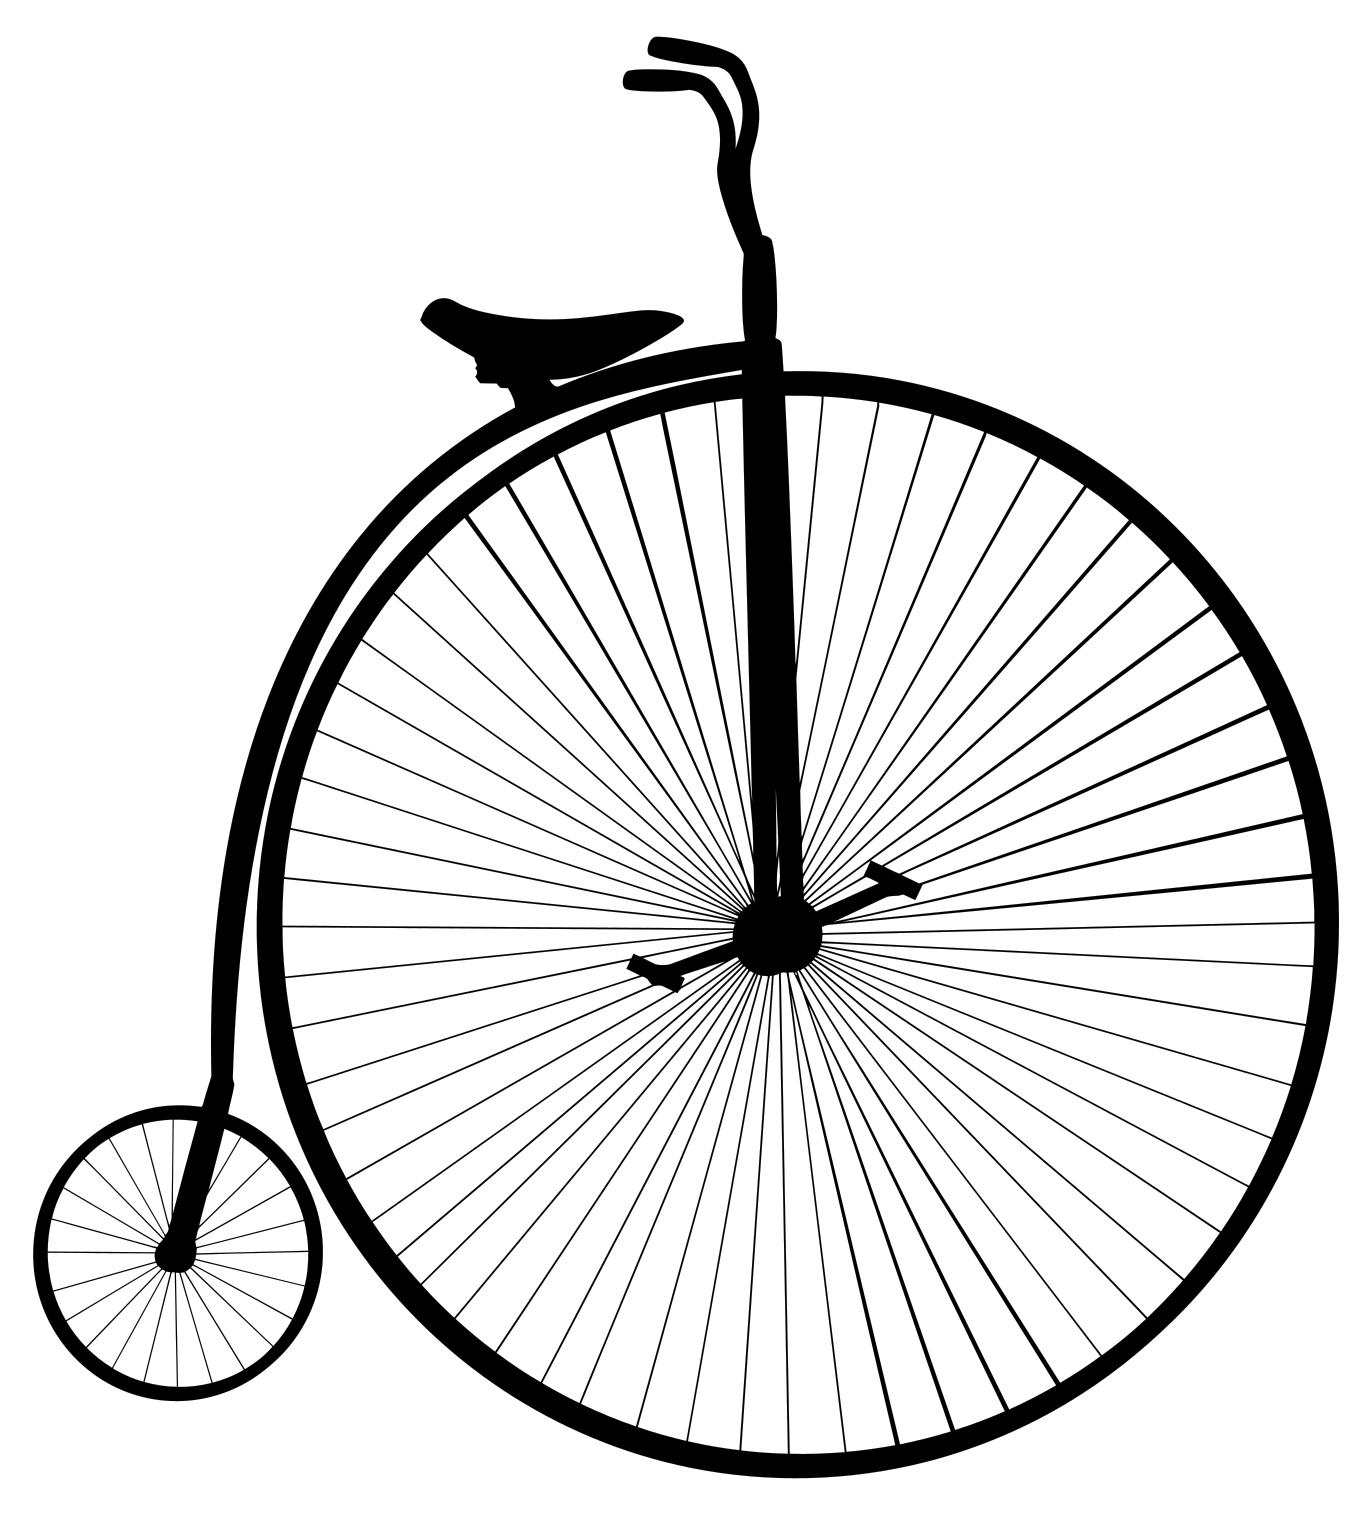 1372x1515 Penny Farthing (Large Small Wheels) Bicycle Silhouette Clipart